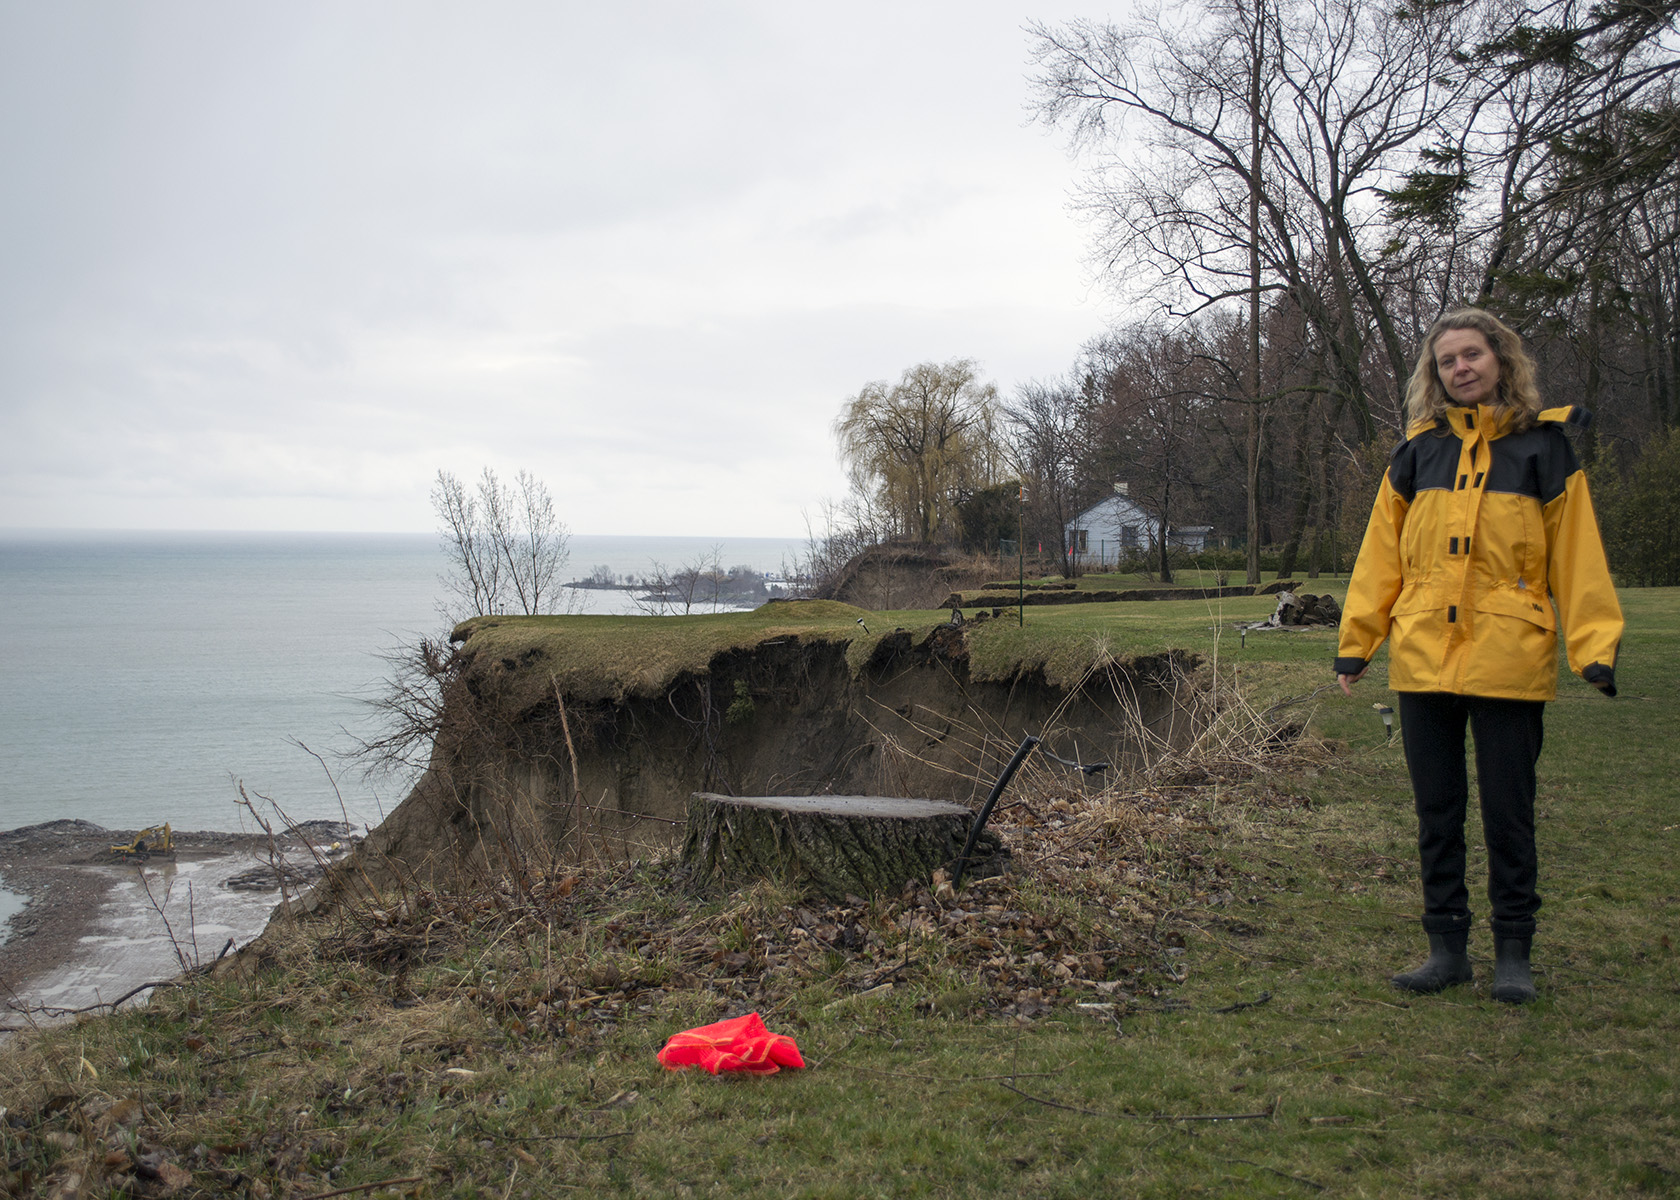 Meadowcliffe resident Susan Scinocca shows the extent of cliff erosion where a tree used to stand.